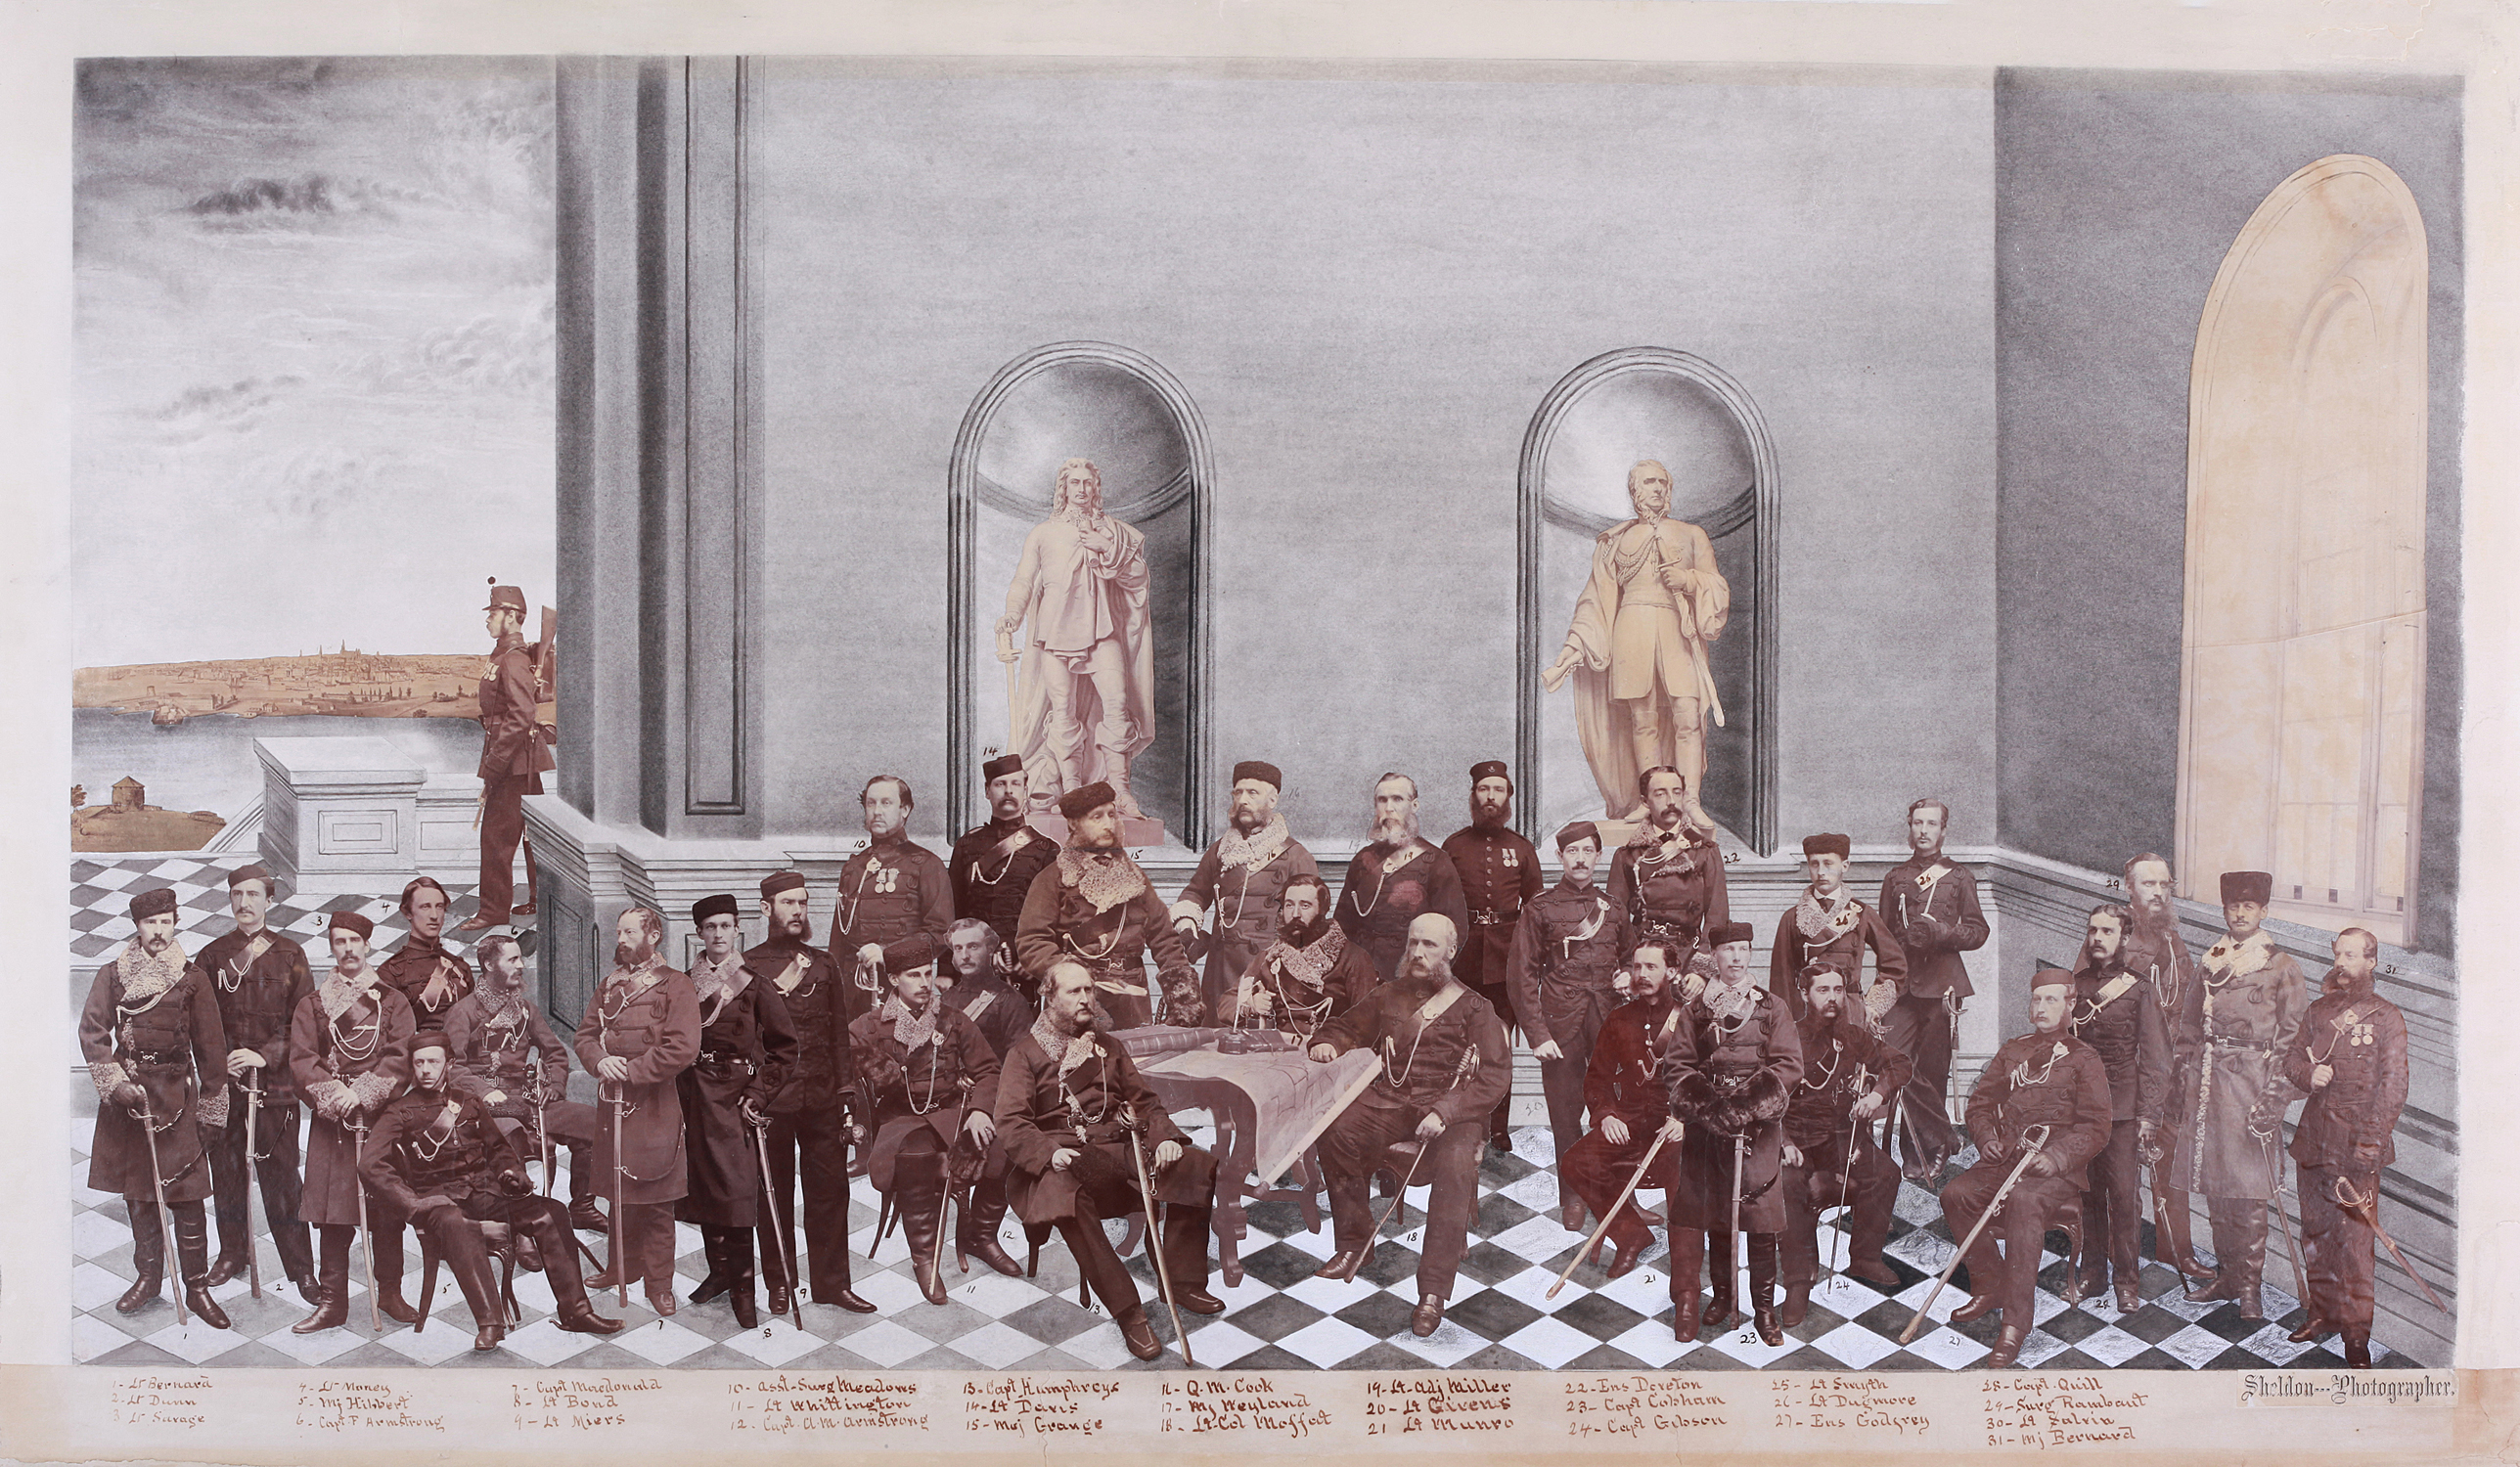 [a photo of the Royal Canadian Rifle Regiment ca. 1867]